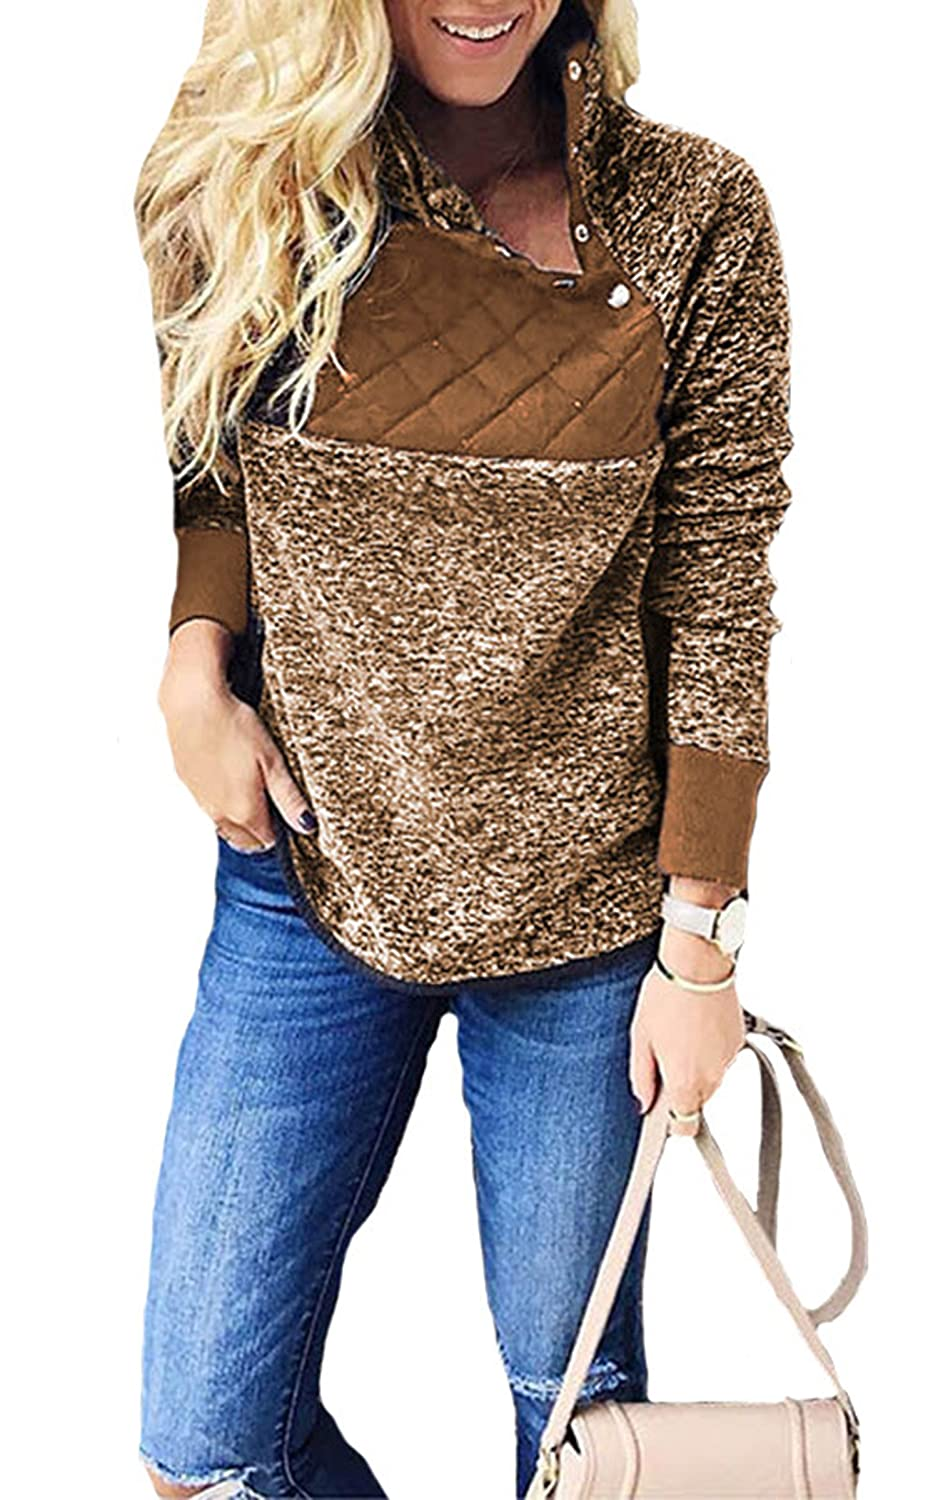 Hibluco Women's Casual Long Sleeve Contrast Button Pullover Fleece Sweater Jacket